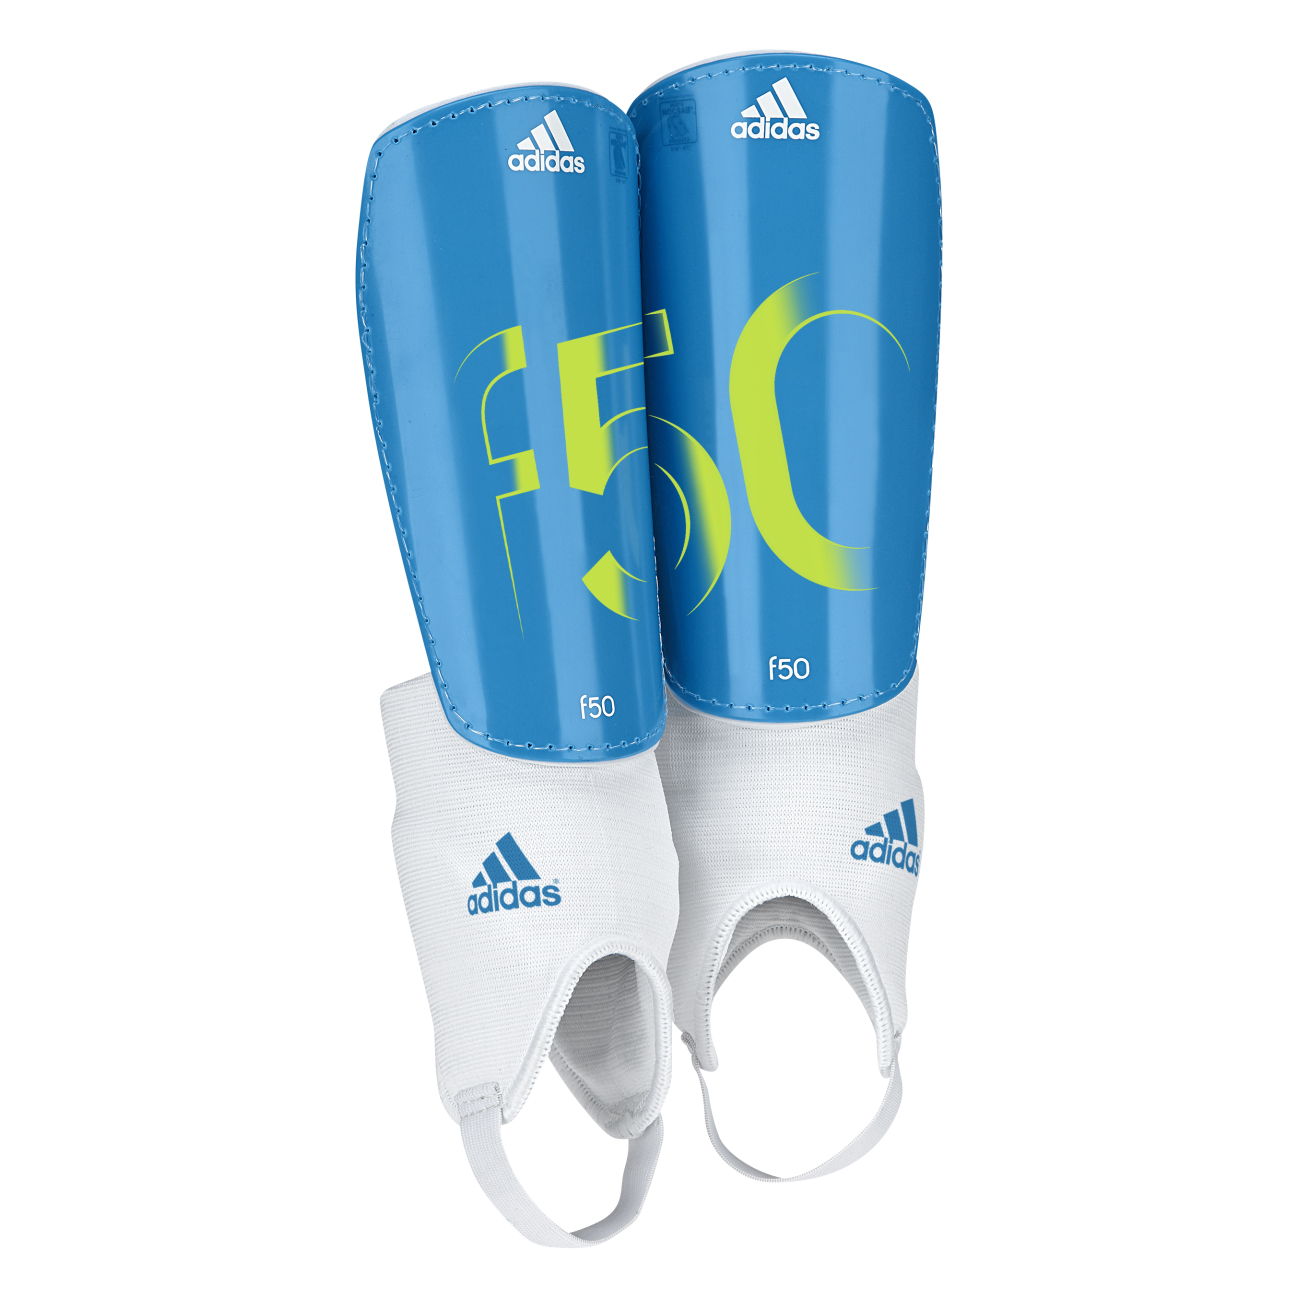 Adidas F50 Shinguards - Kids Blue